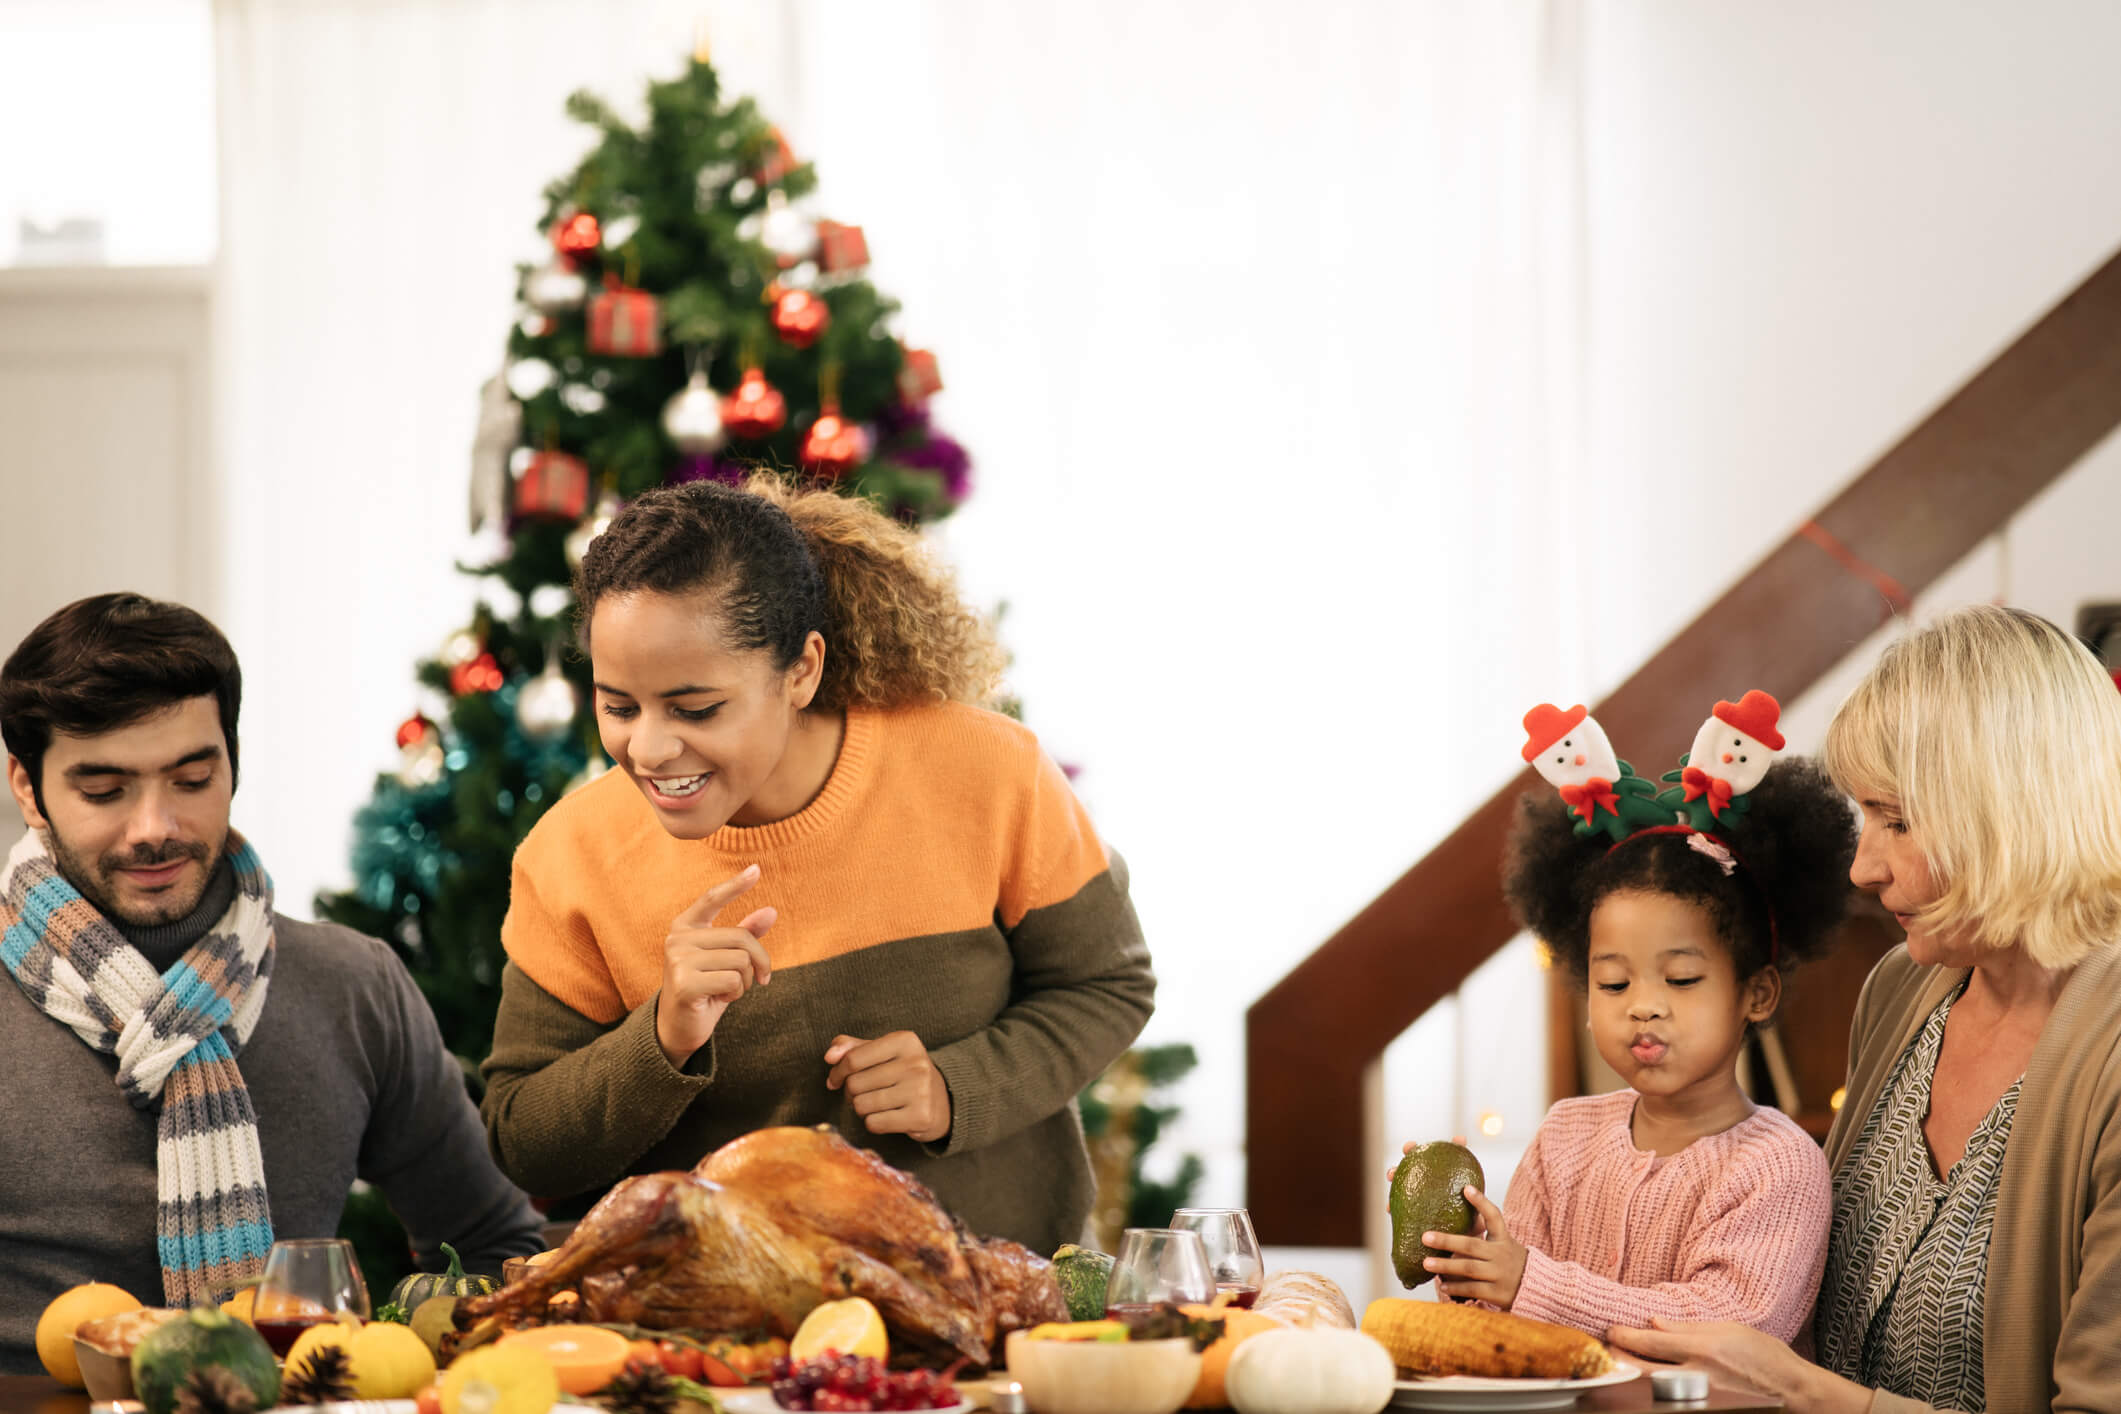 Image of next post - 5 WAYS TO CREATE MEANINGFUL HOLIDAY MEMORIES WITH YOUR LOVED ONE